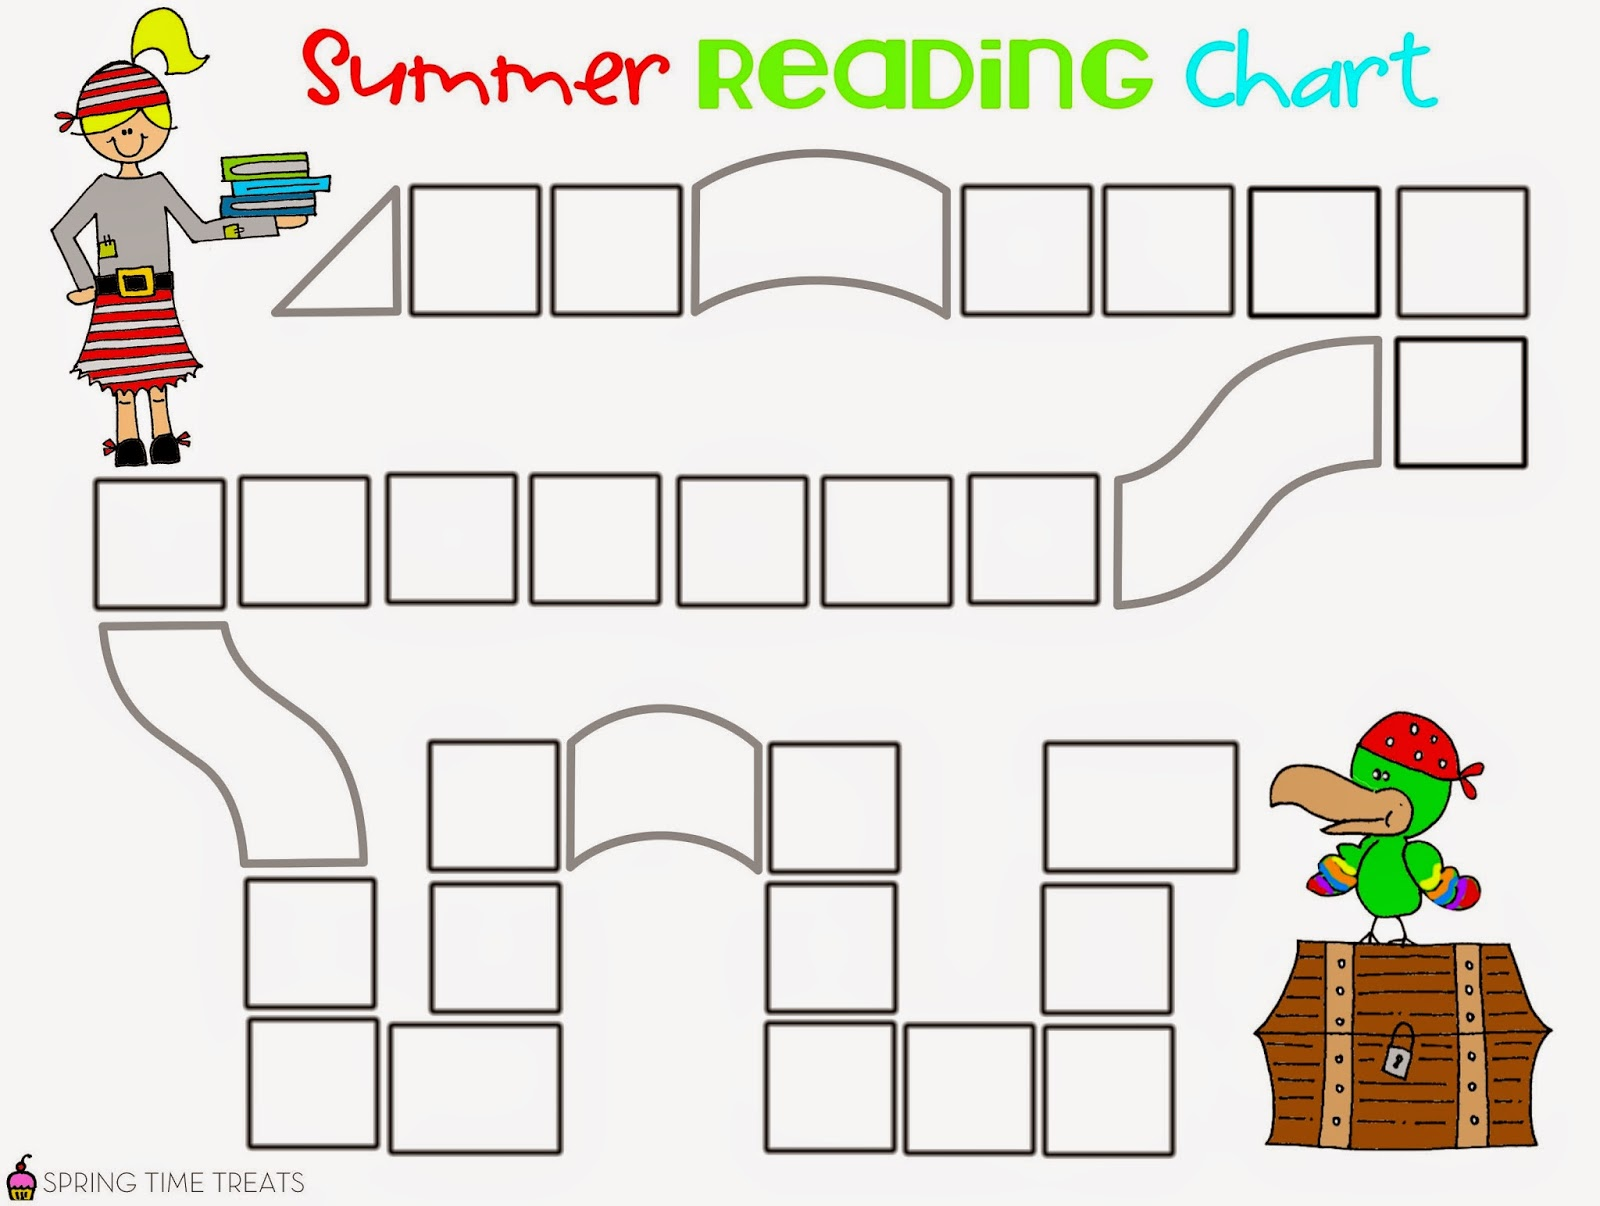 Spring Time Treats Summer Pirate Reading Chart Free